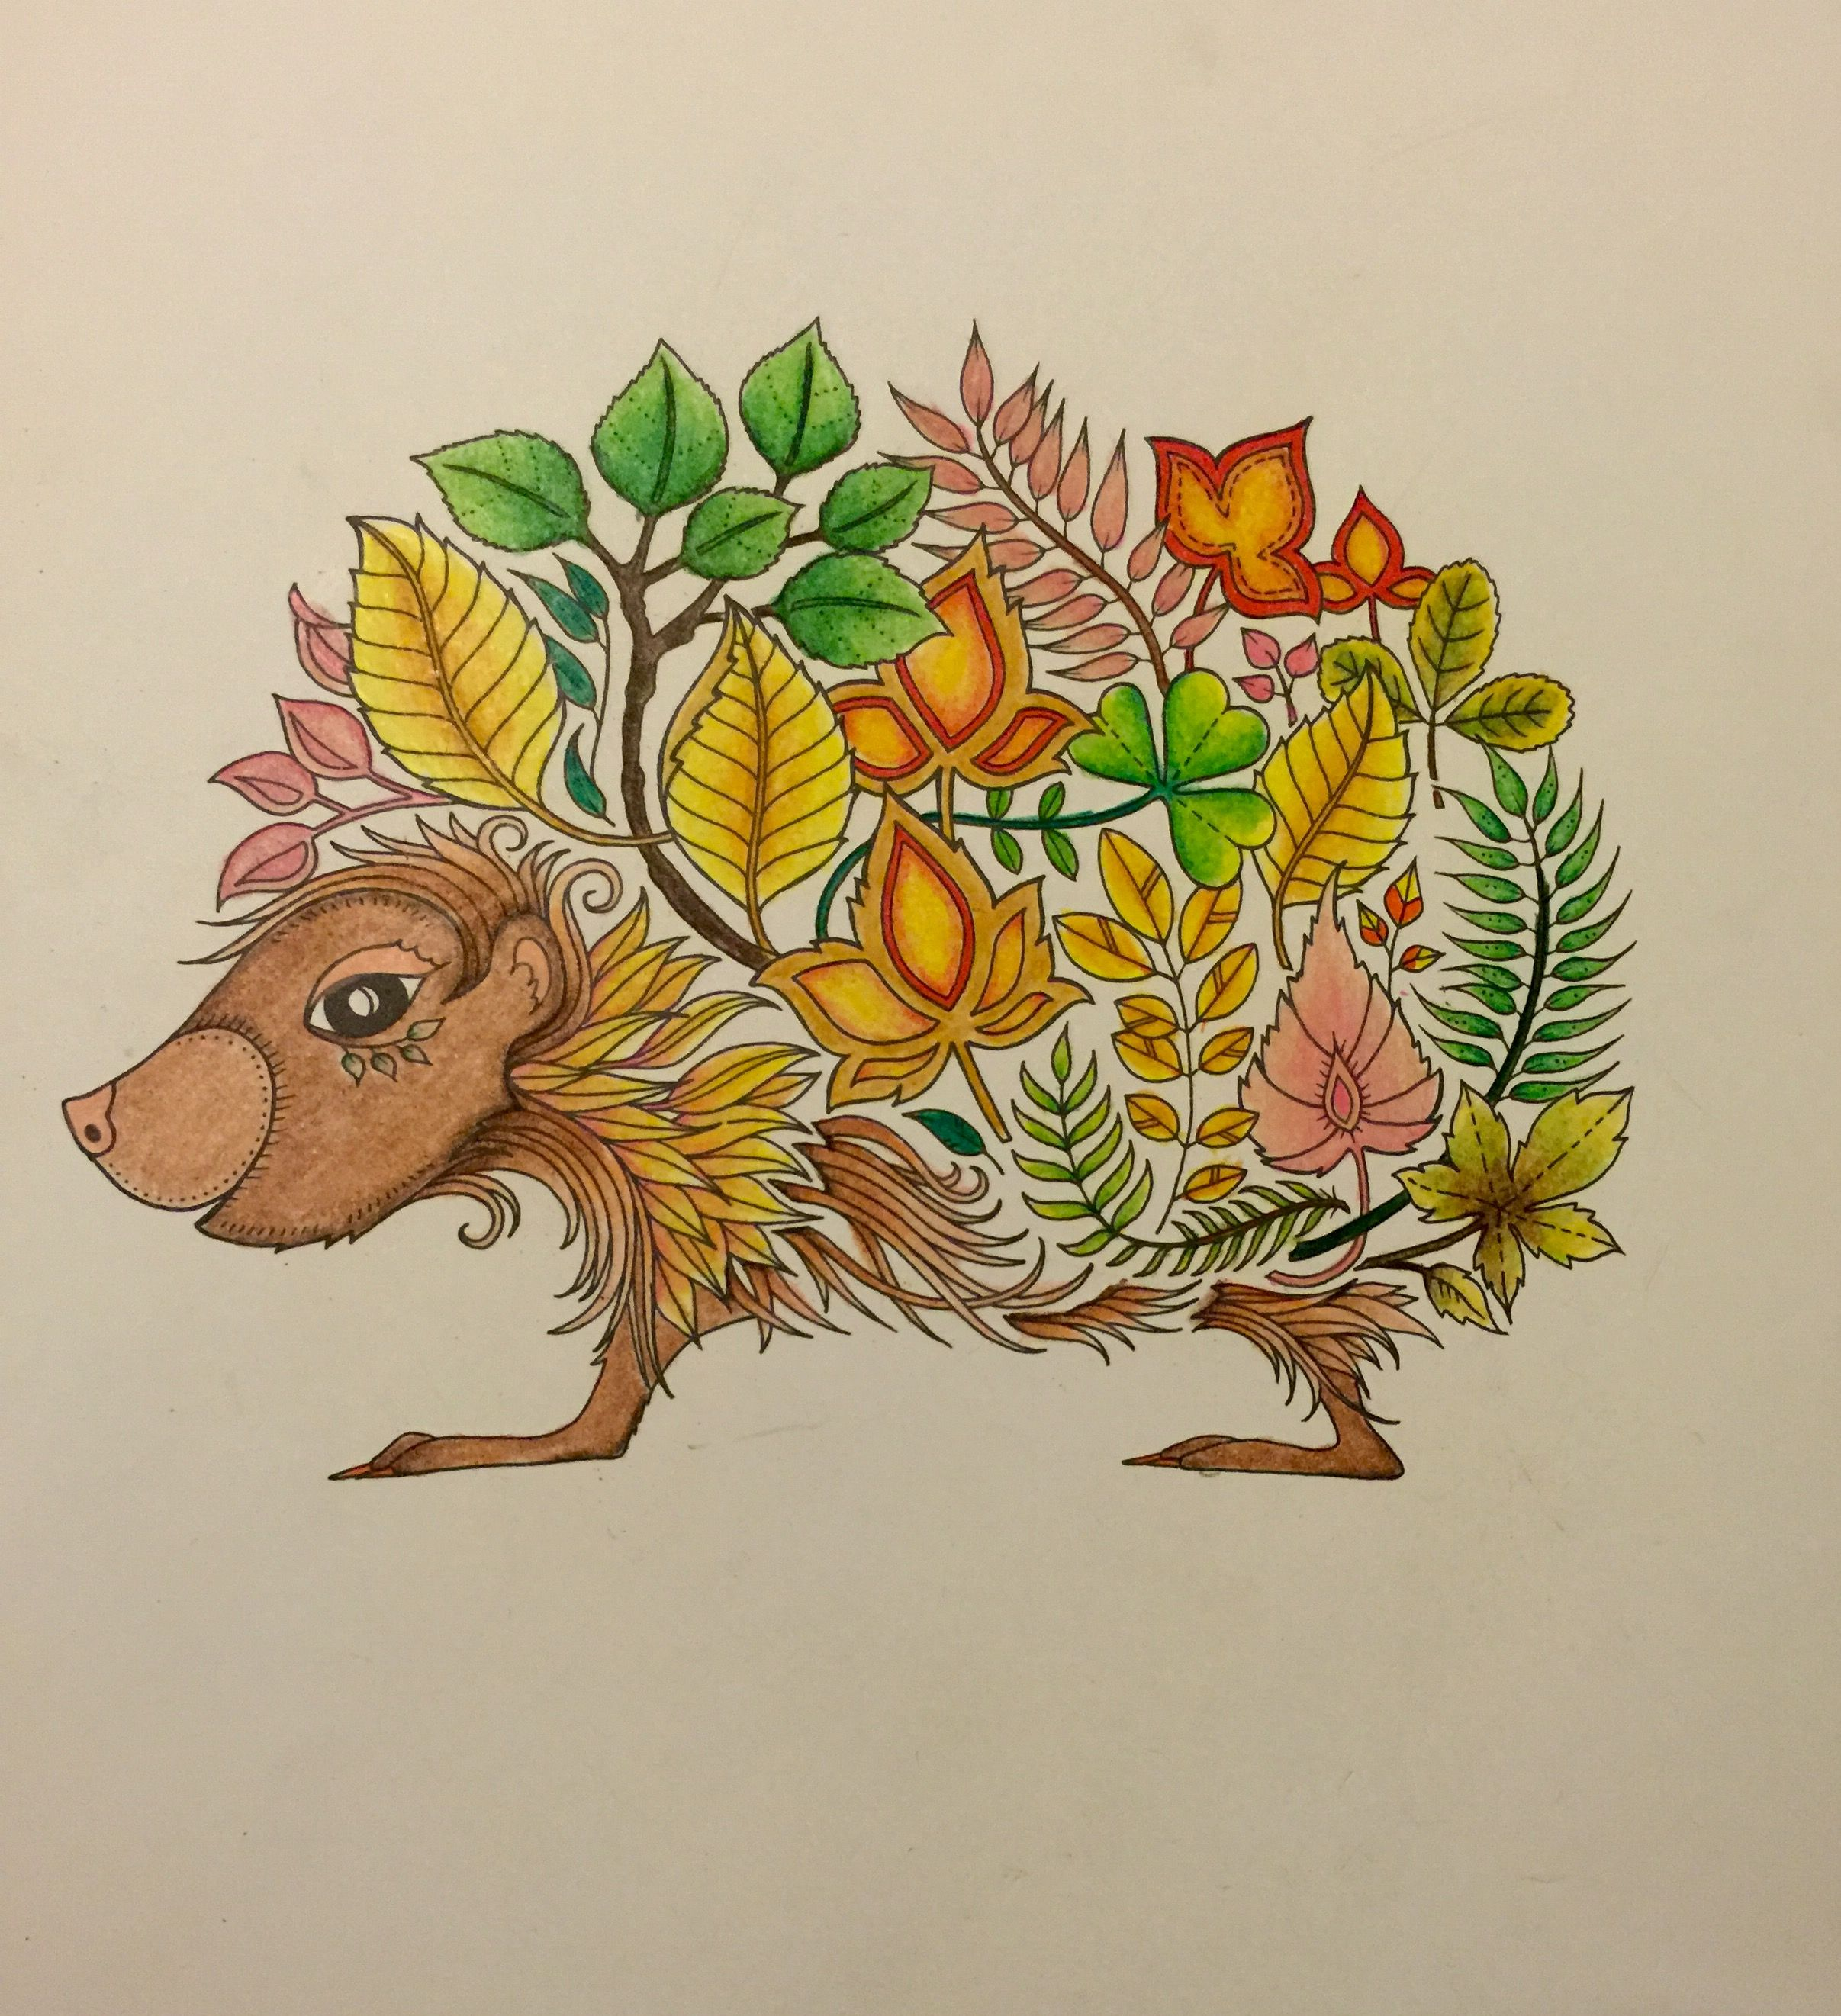 Hedgehog Enchanted Forest Coloring Book